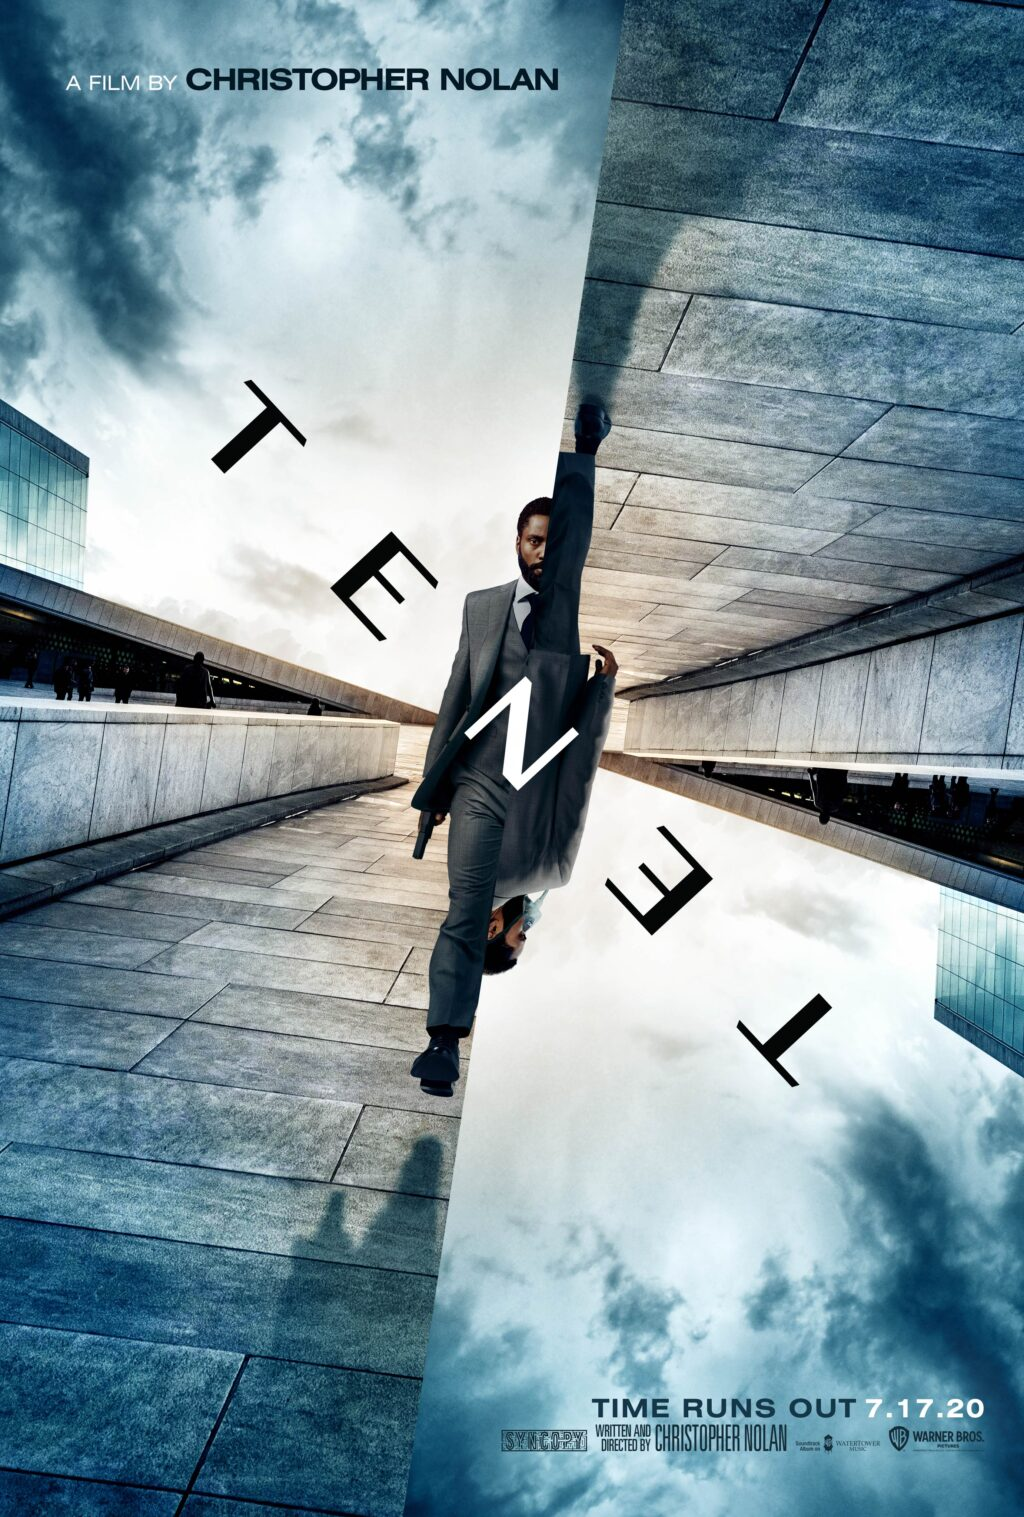 Tenet 1024x1517 - Christopher Nolan's TENET Holds July Release Anticipating Theaters Will Be Back By Then